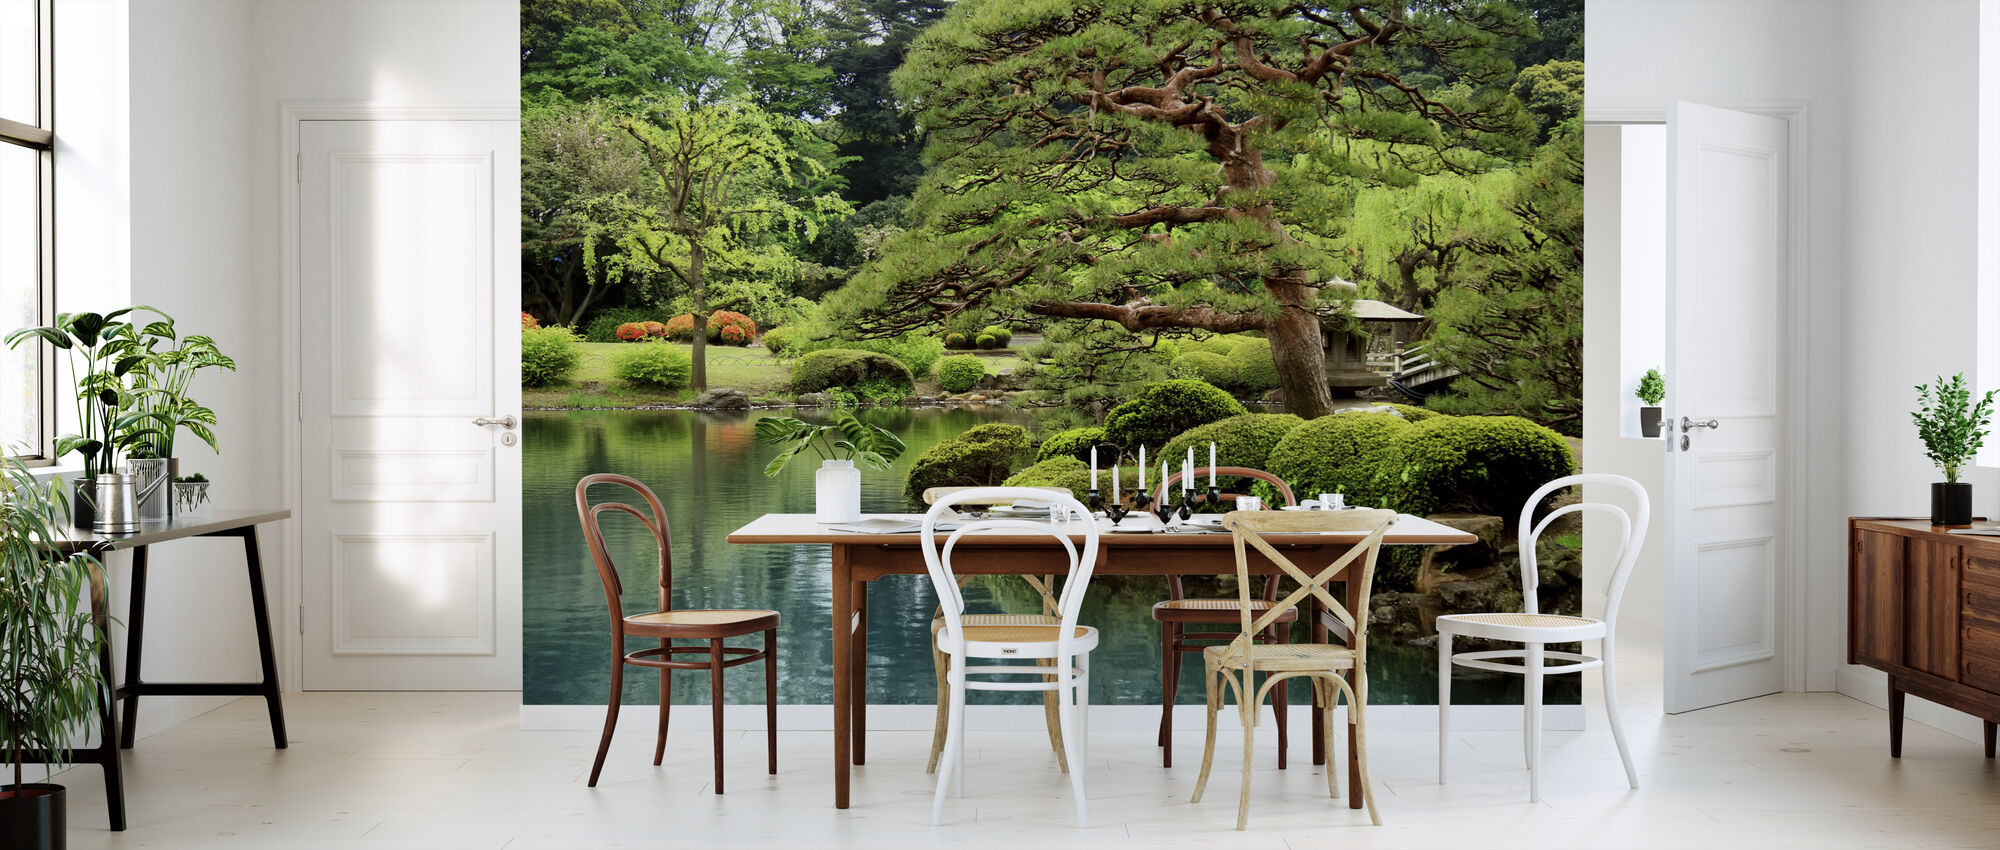 Calm Zen Lake and Bonsai Trees in Tokyo Garden - Wallpaper - Kitchen